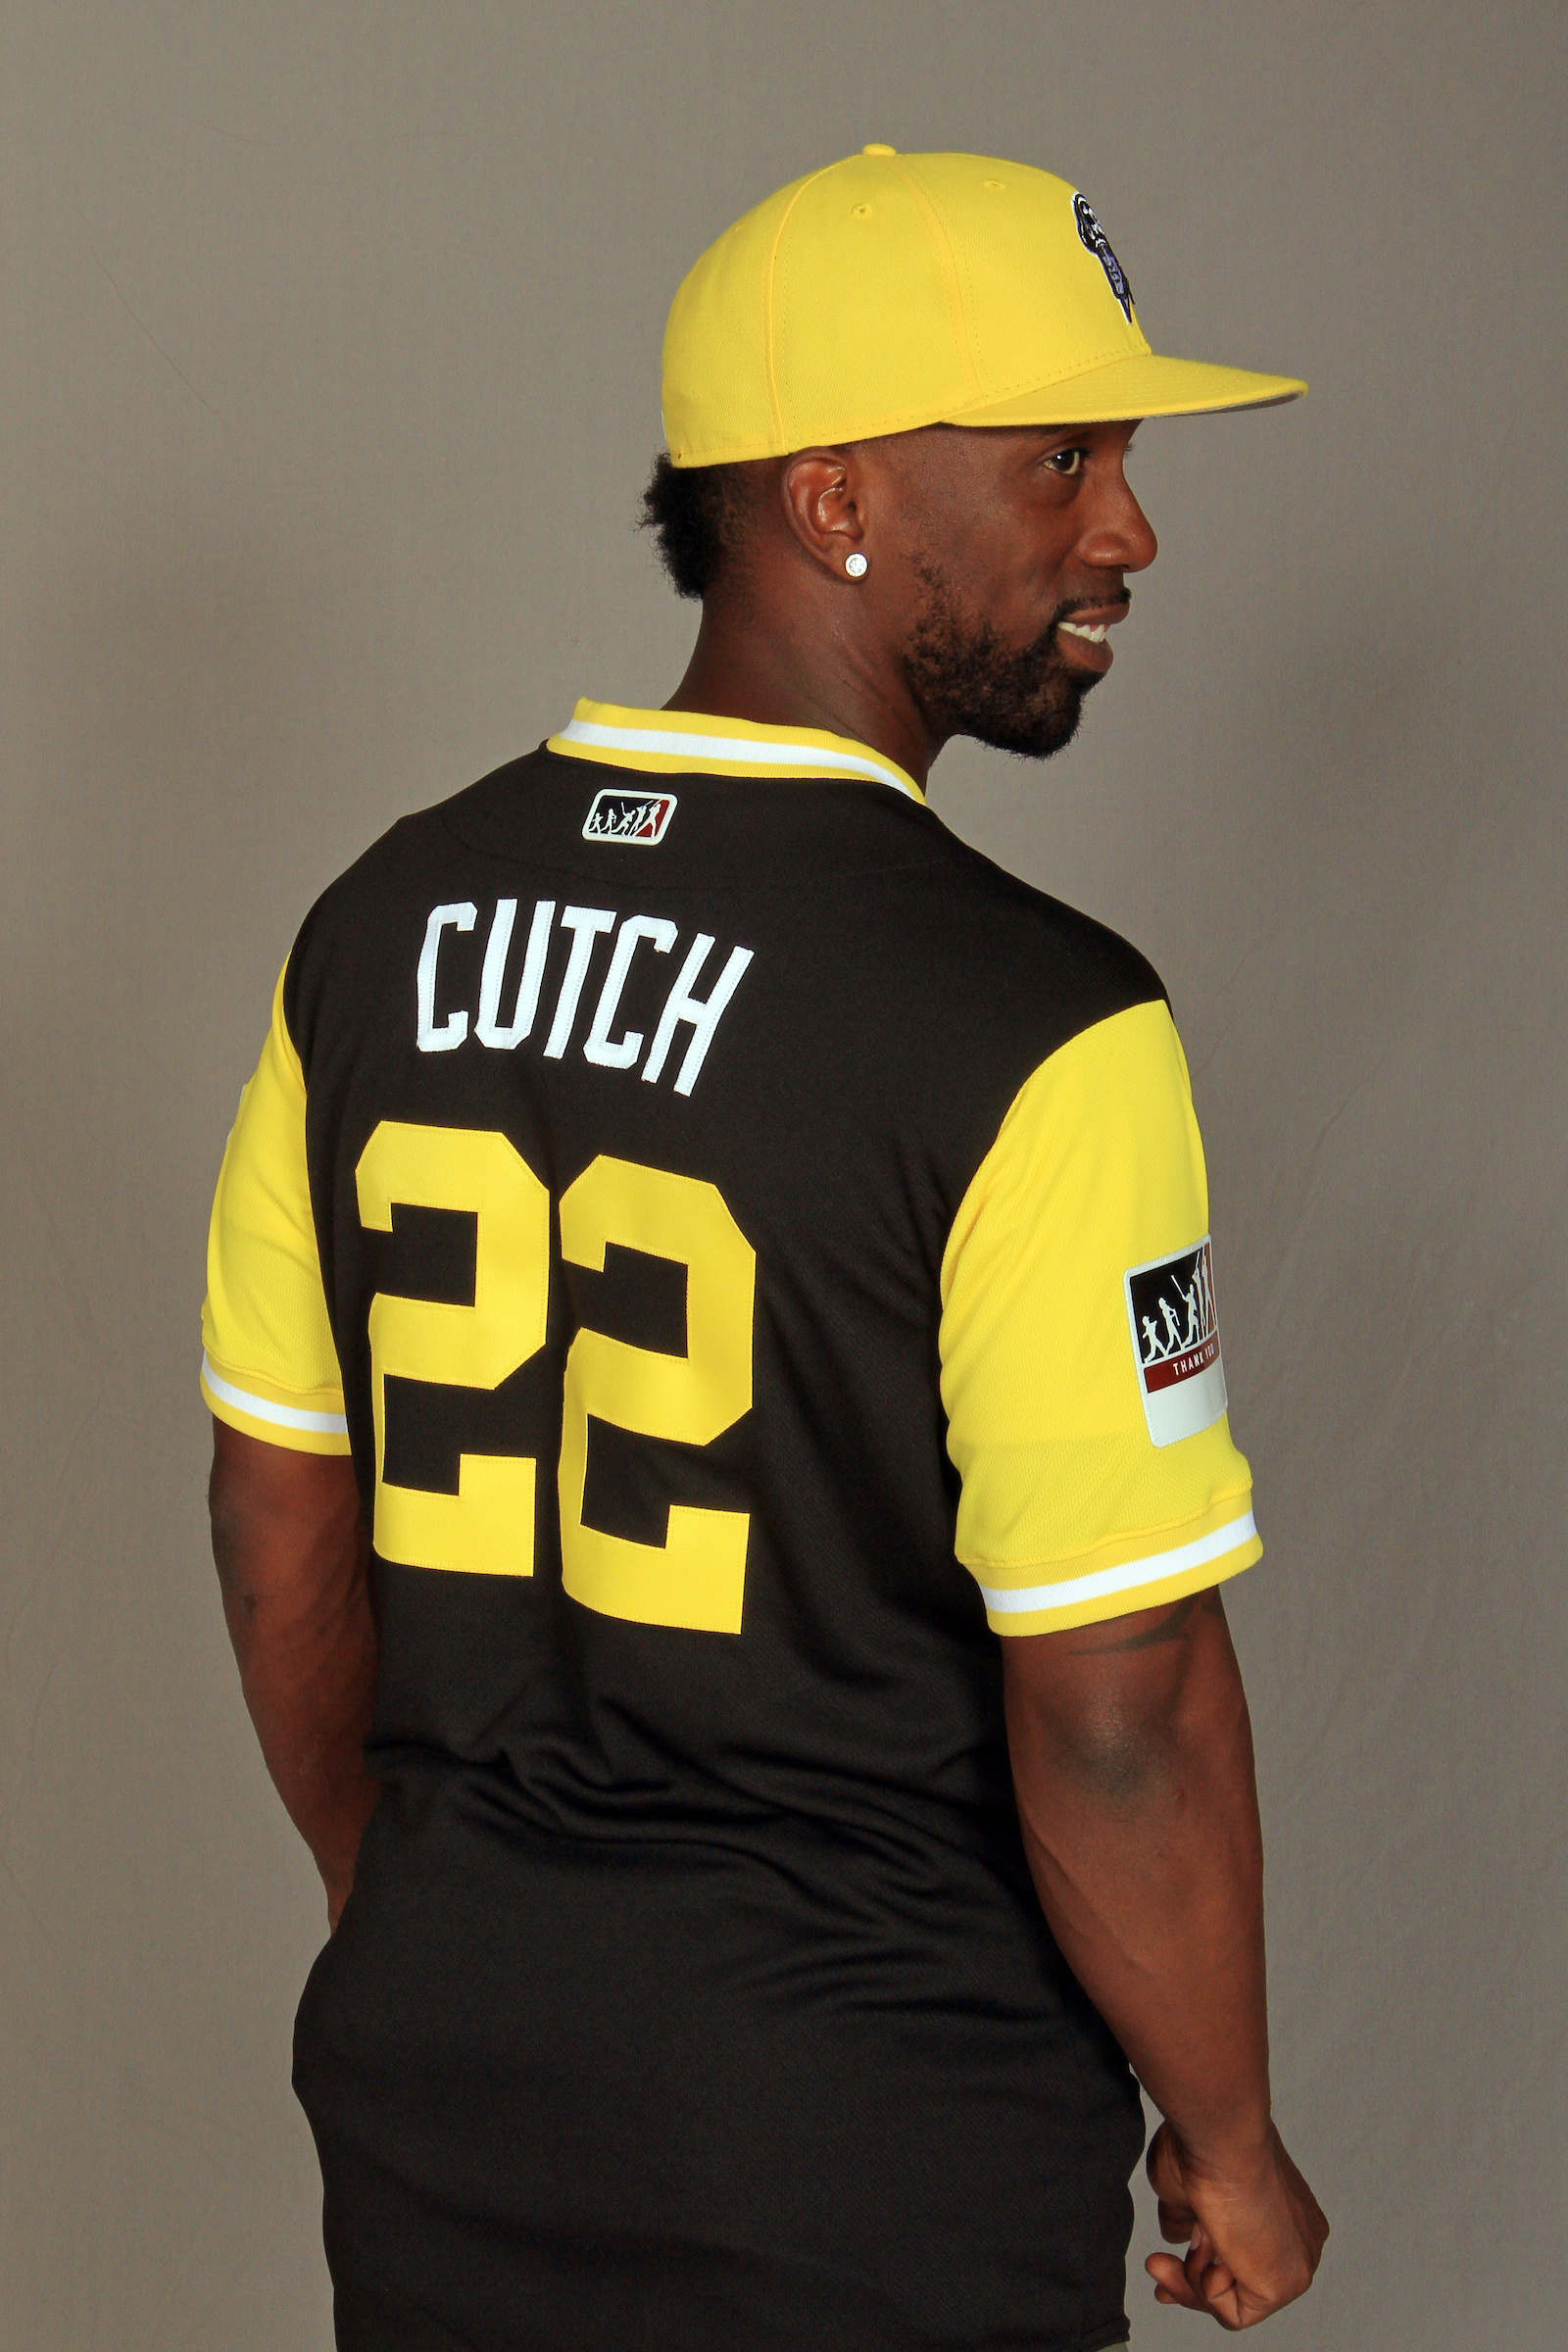 promo code 49d50 9352e Check out the Pirates' new colorful jerseys with nicknames ...